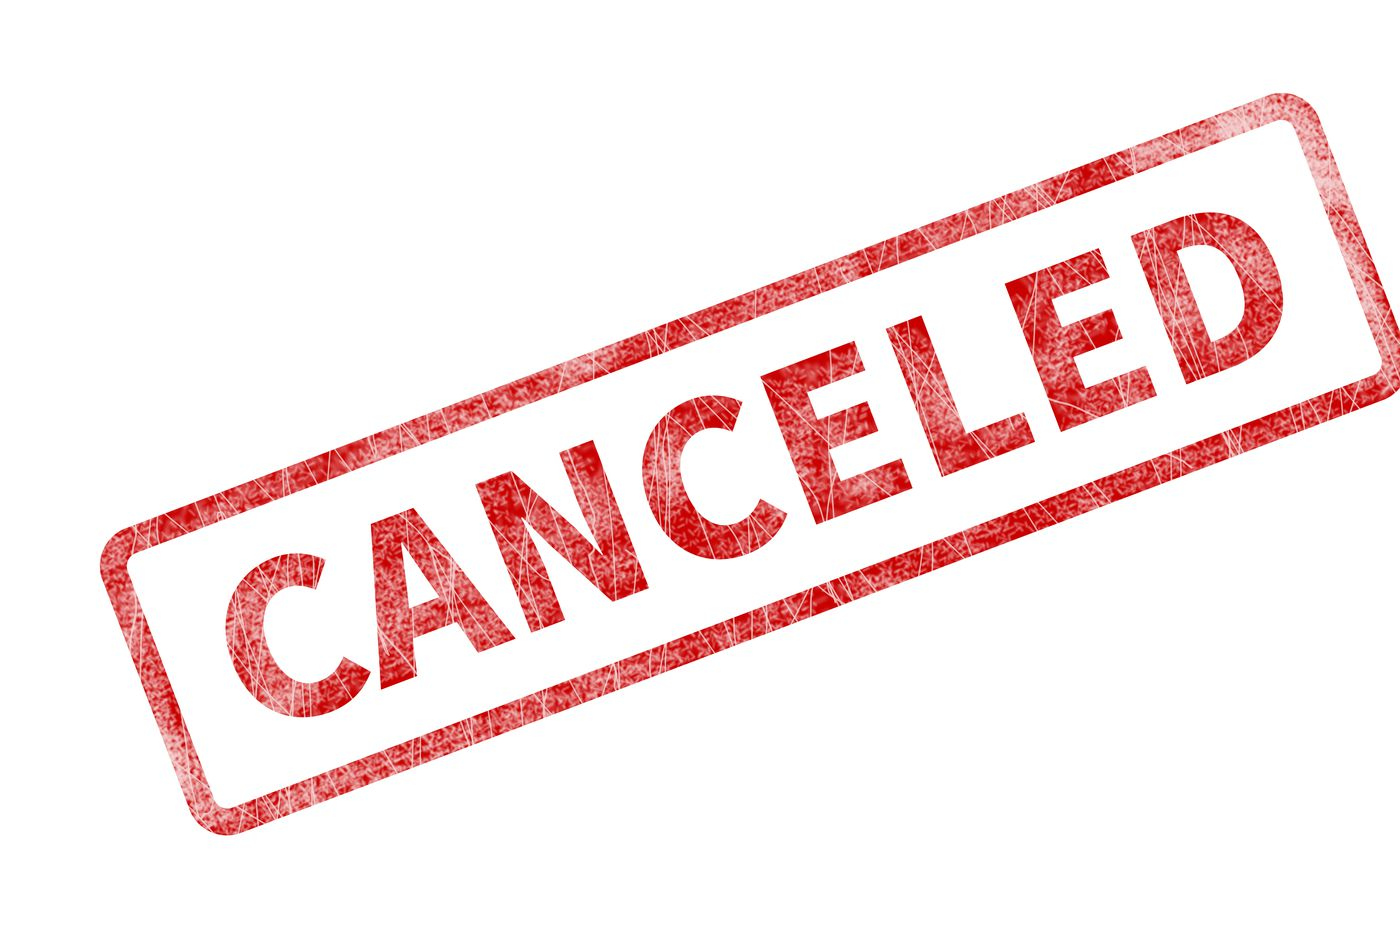 All Athletic Events For Thursday (2/18) Have Been Cancelled